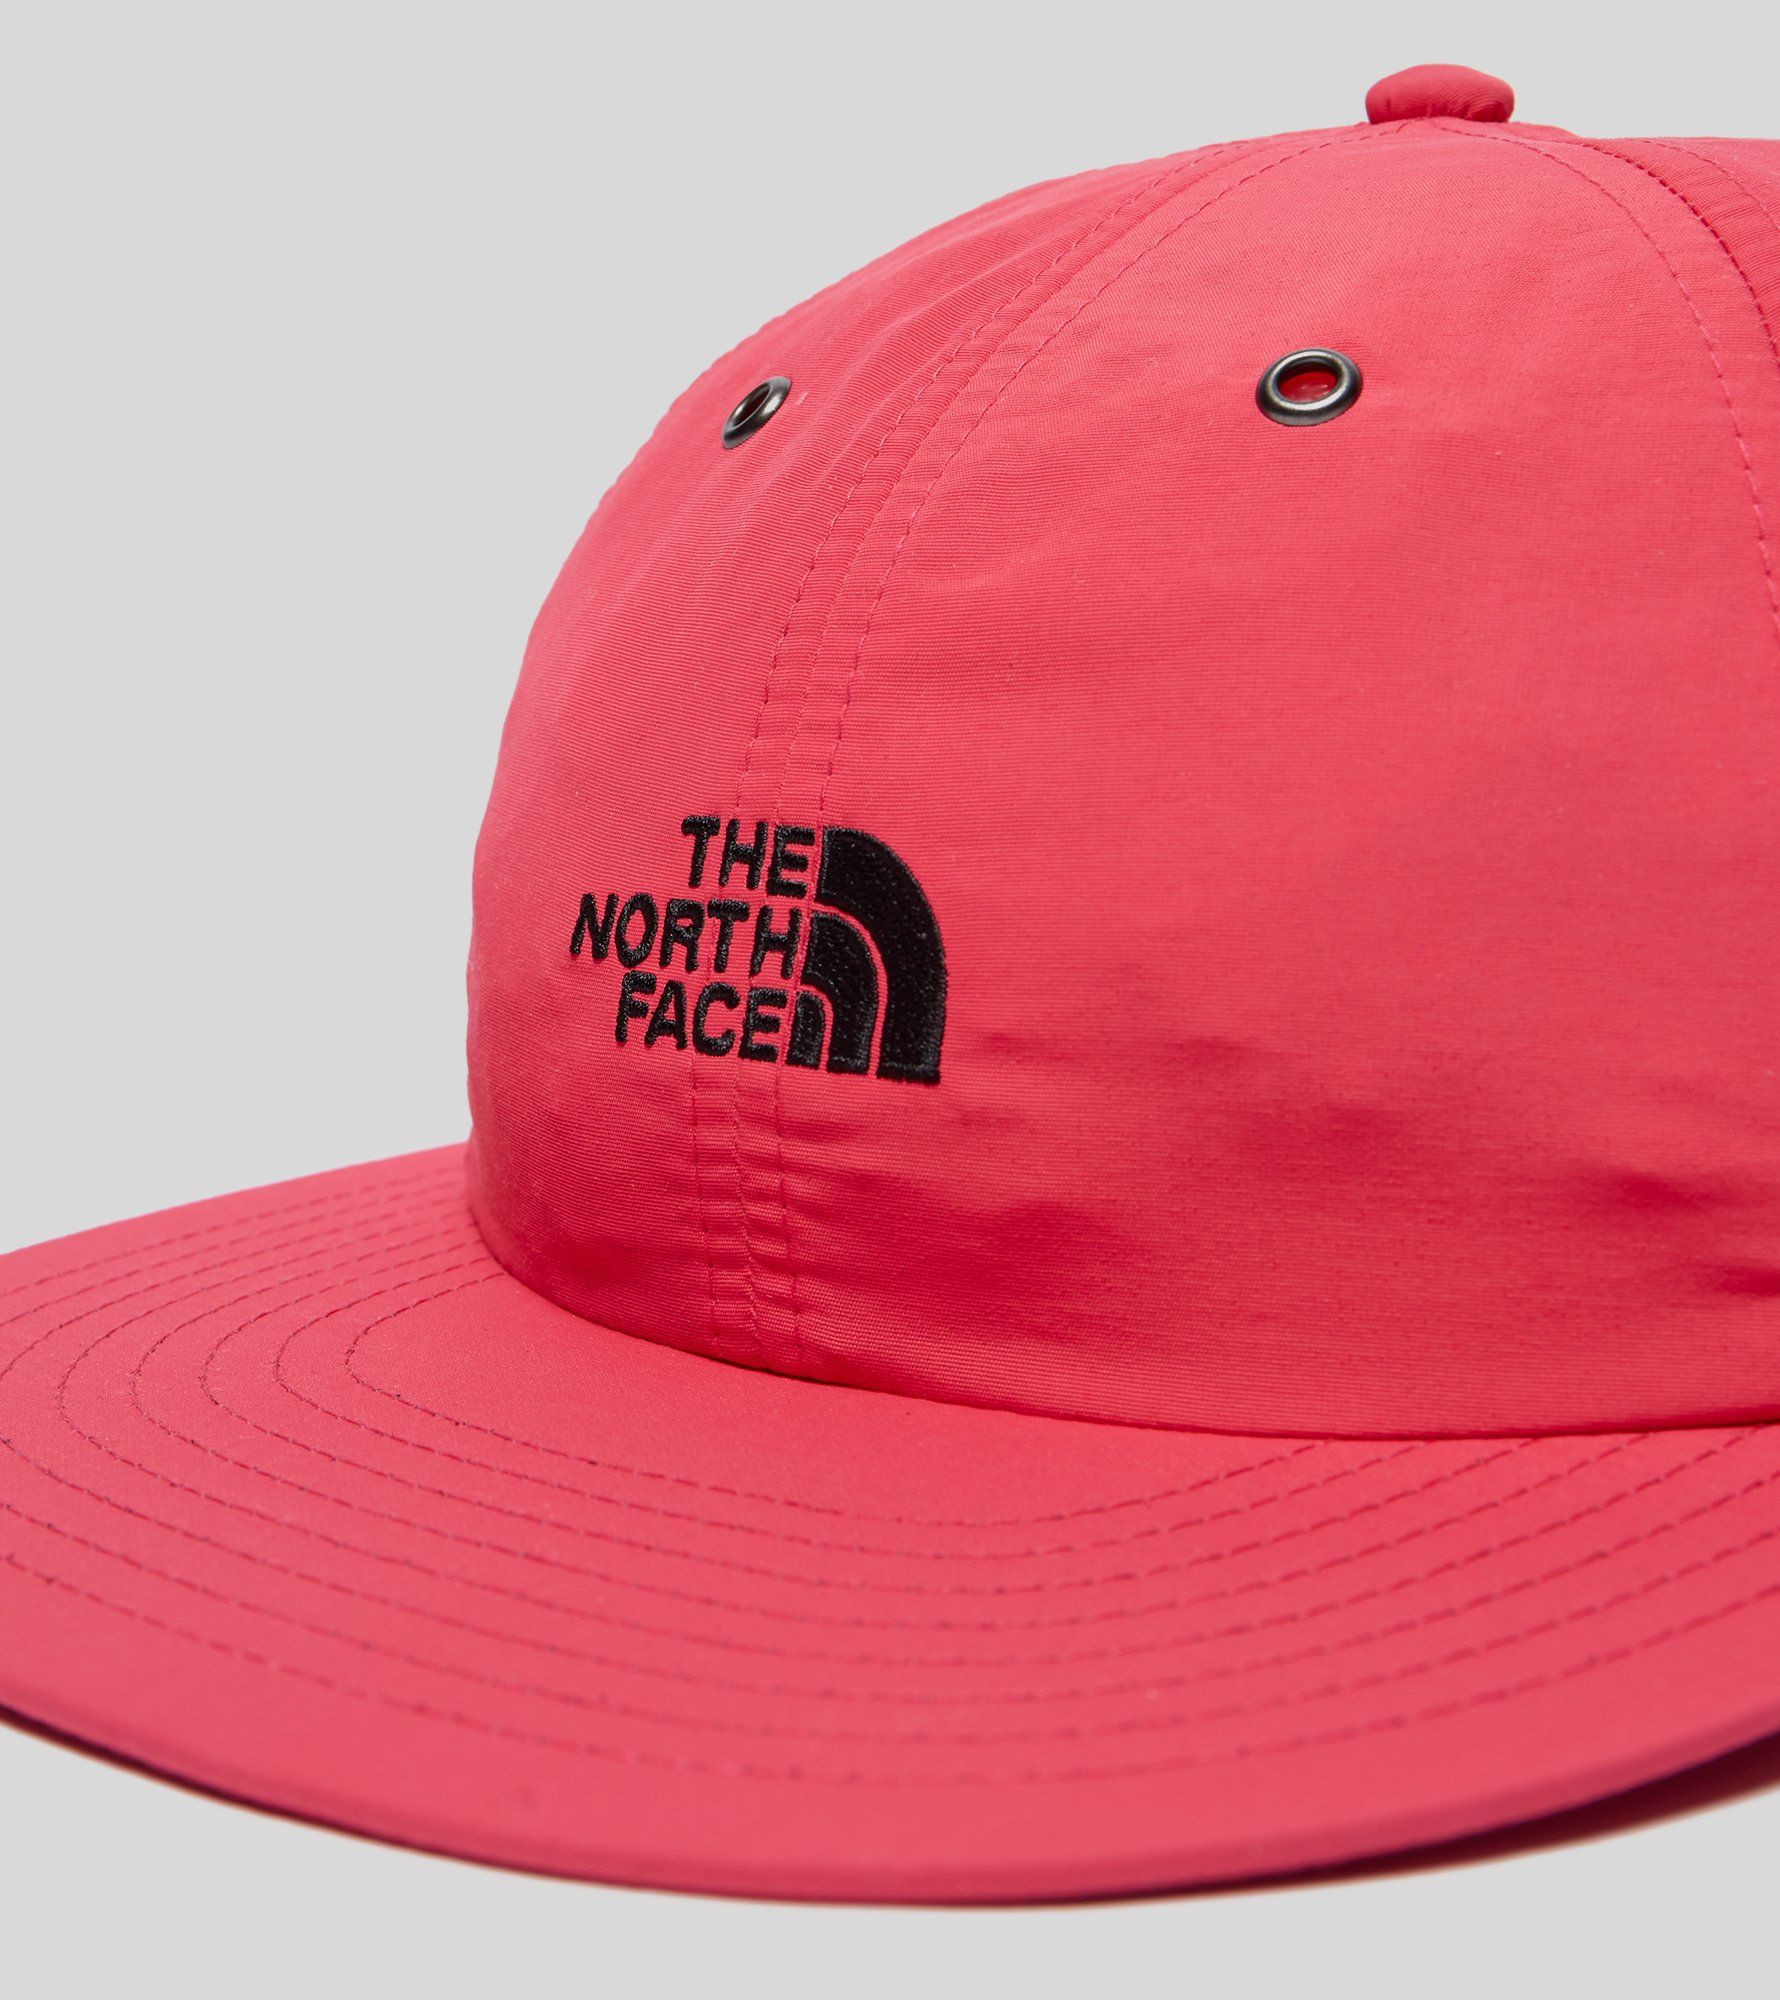 The North Face Throwback Cap